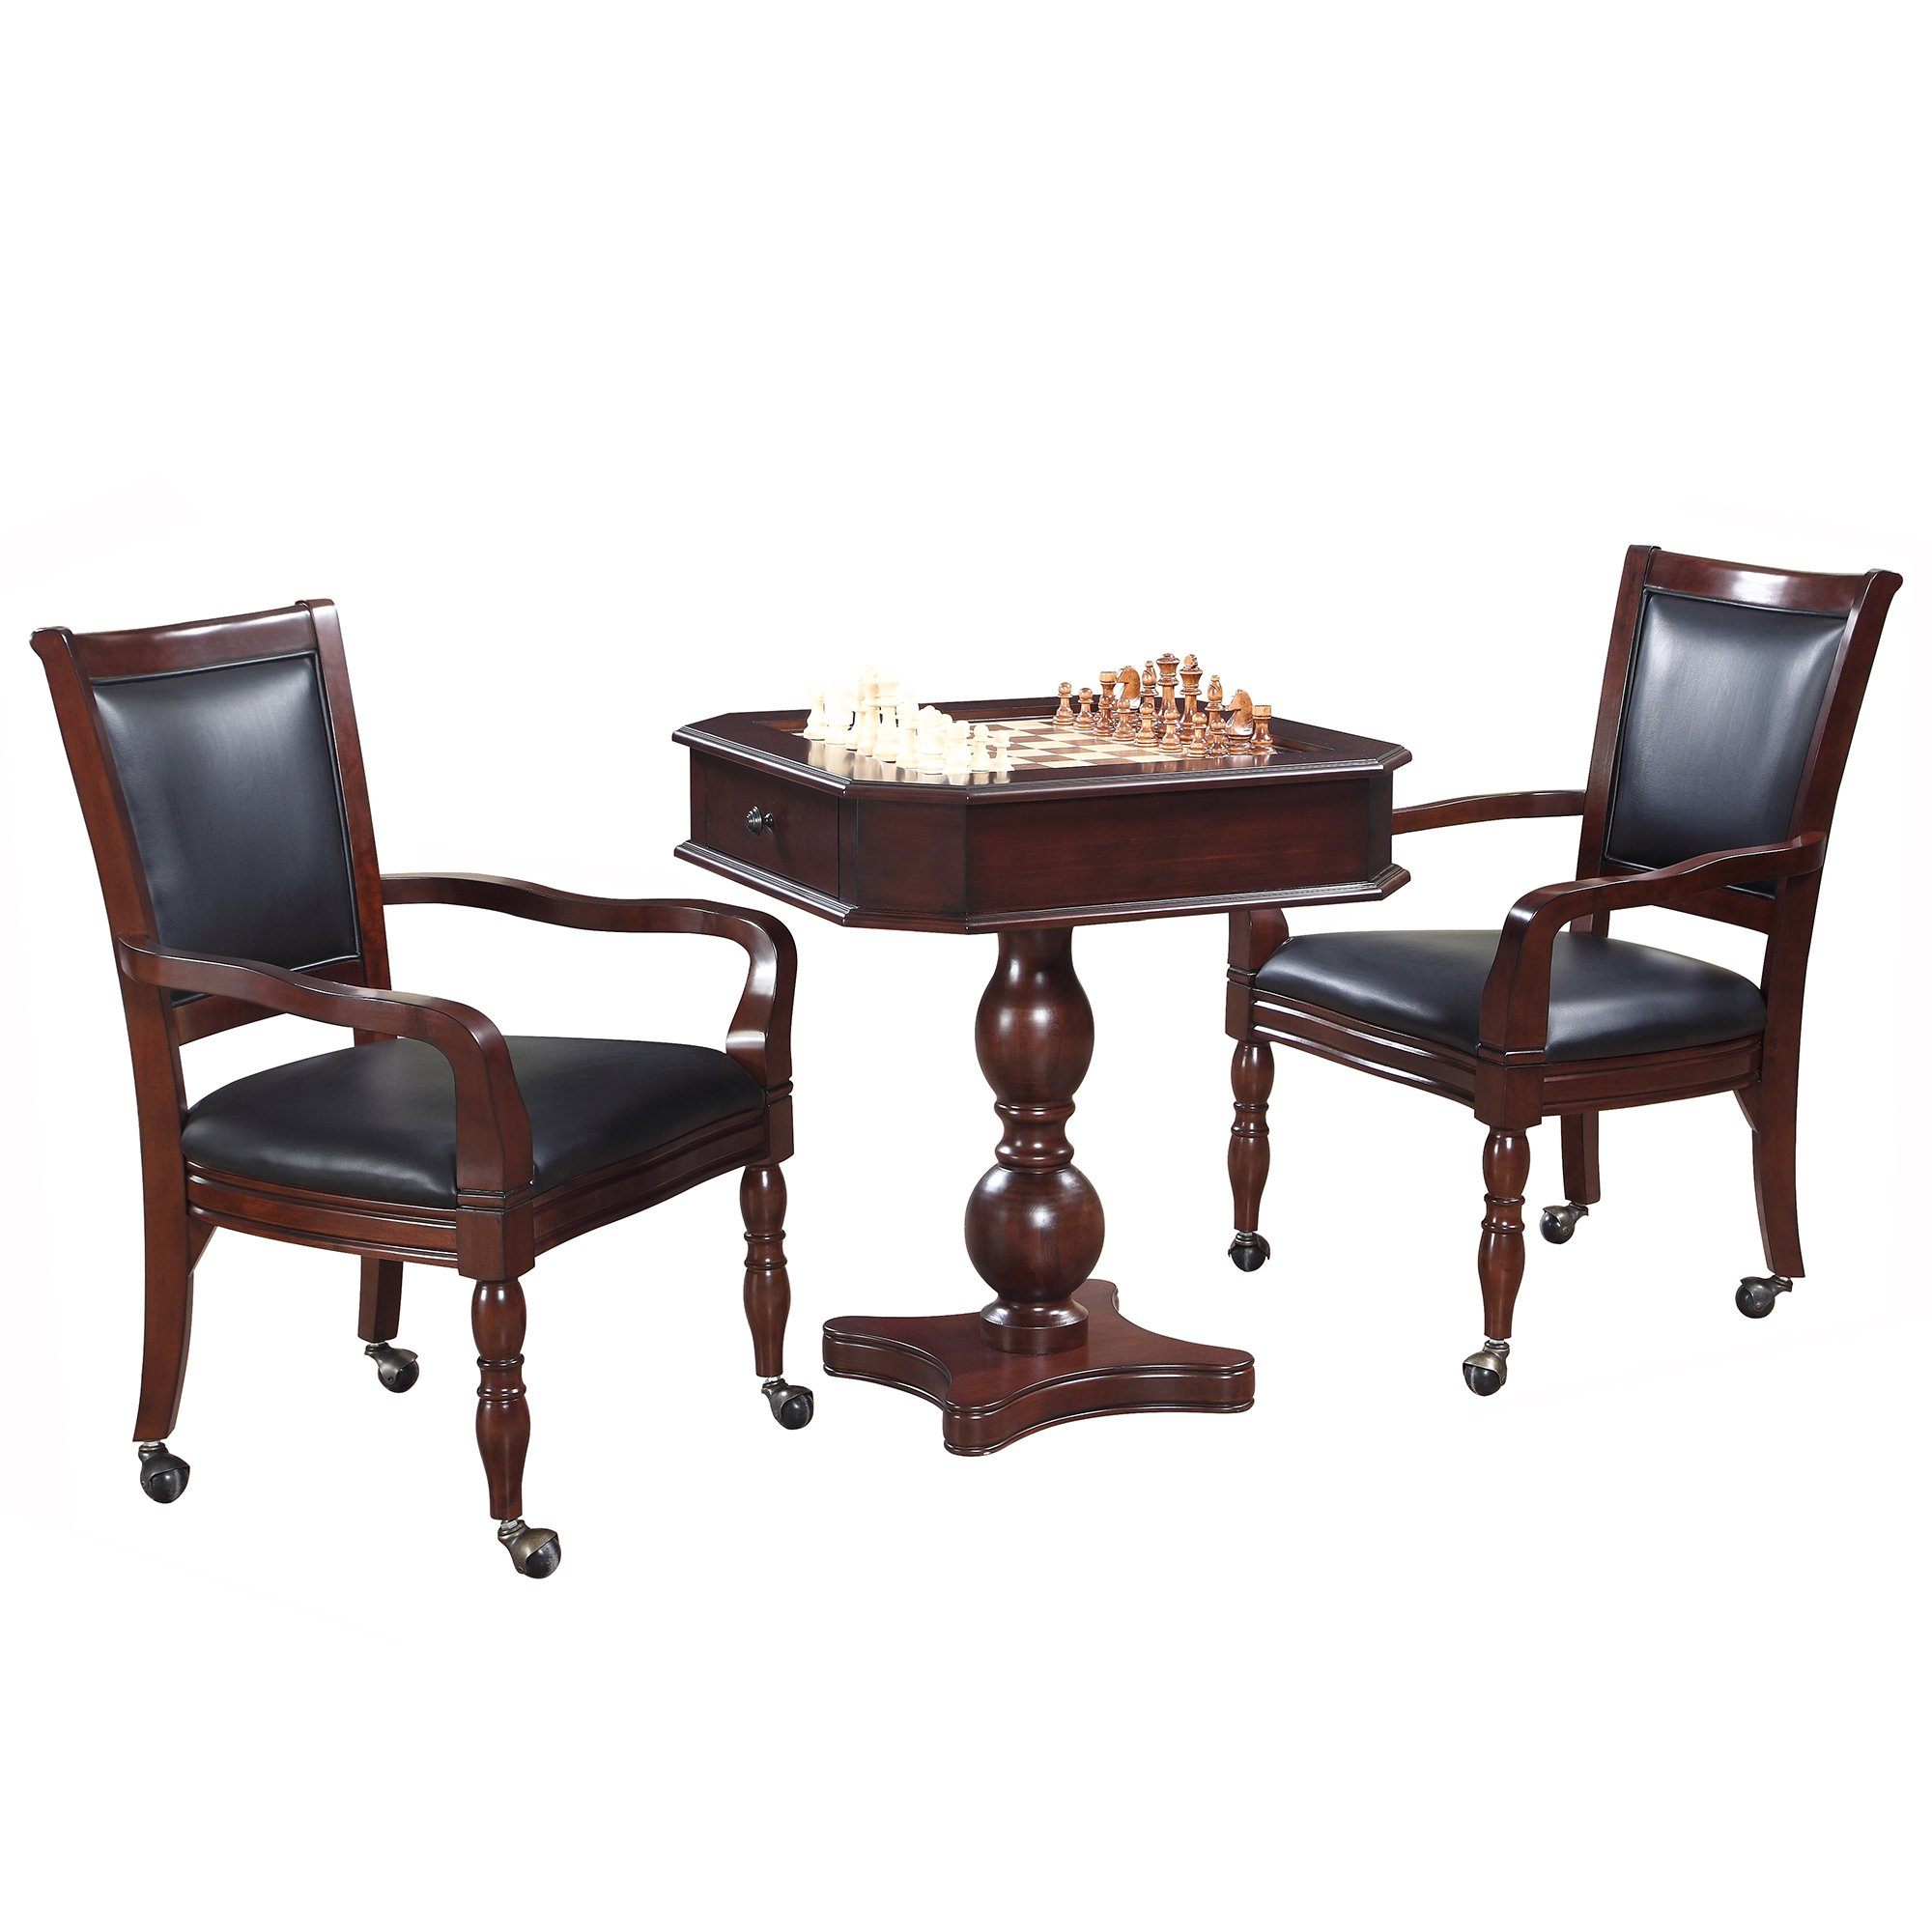 Hathaway Fortress Chess, Checkers & Backgammon Pedestal Game Table & Chairs Set - Mahogany by Hathaway